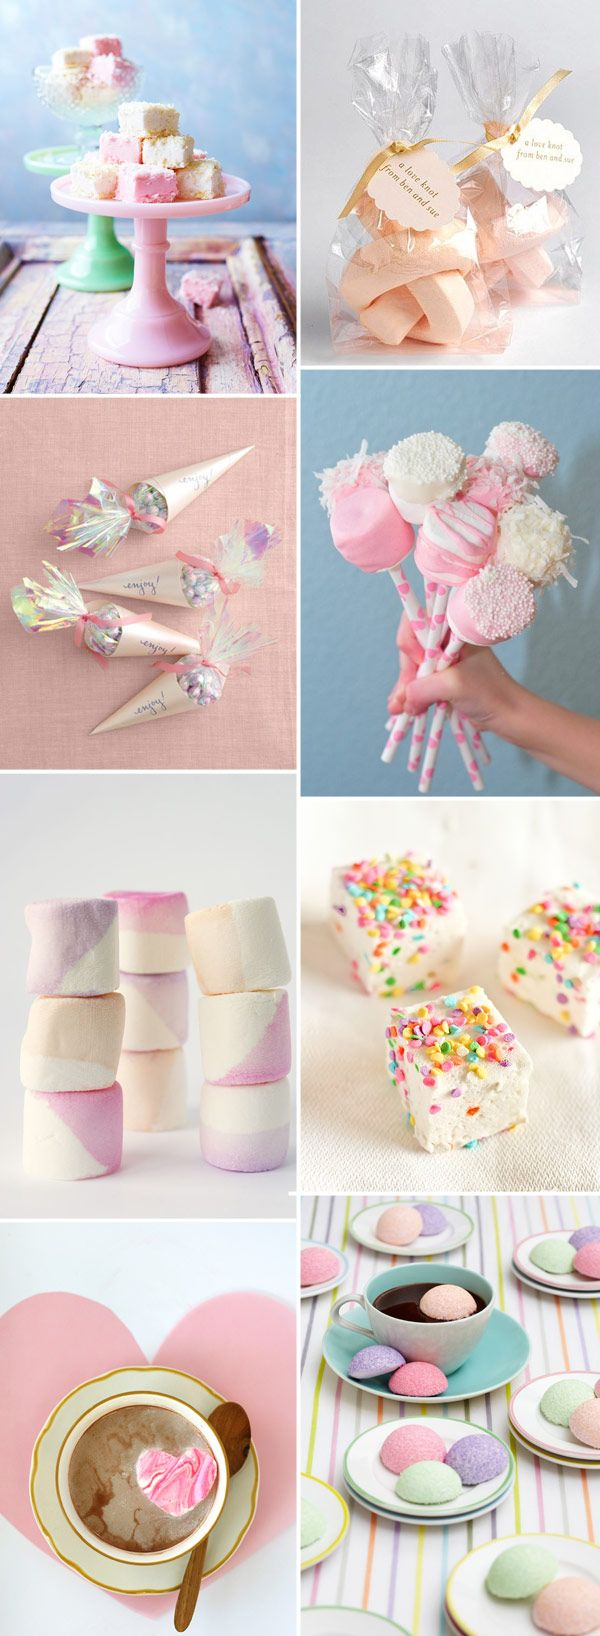 Marshmallow Wedding Ideas....Let's change the colors to BLUES for our Little Baby Boy's Shower!  <3